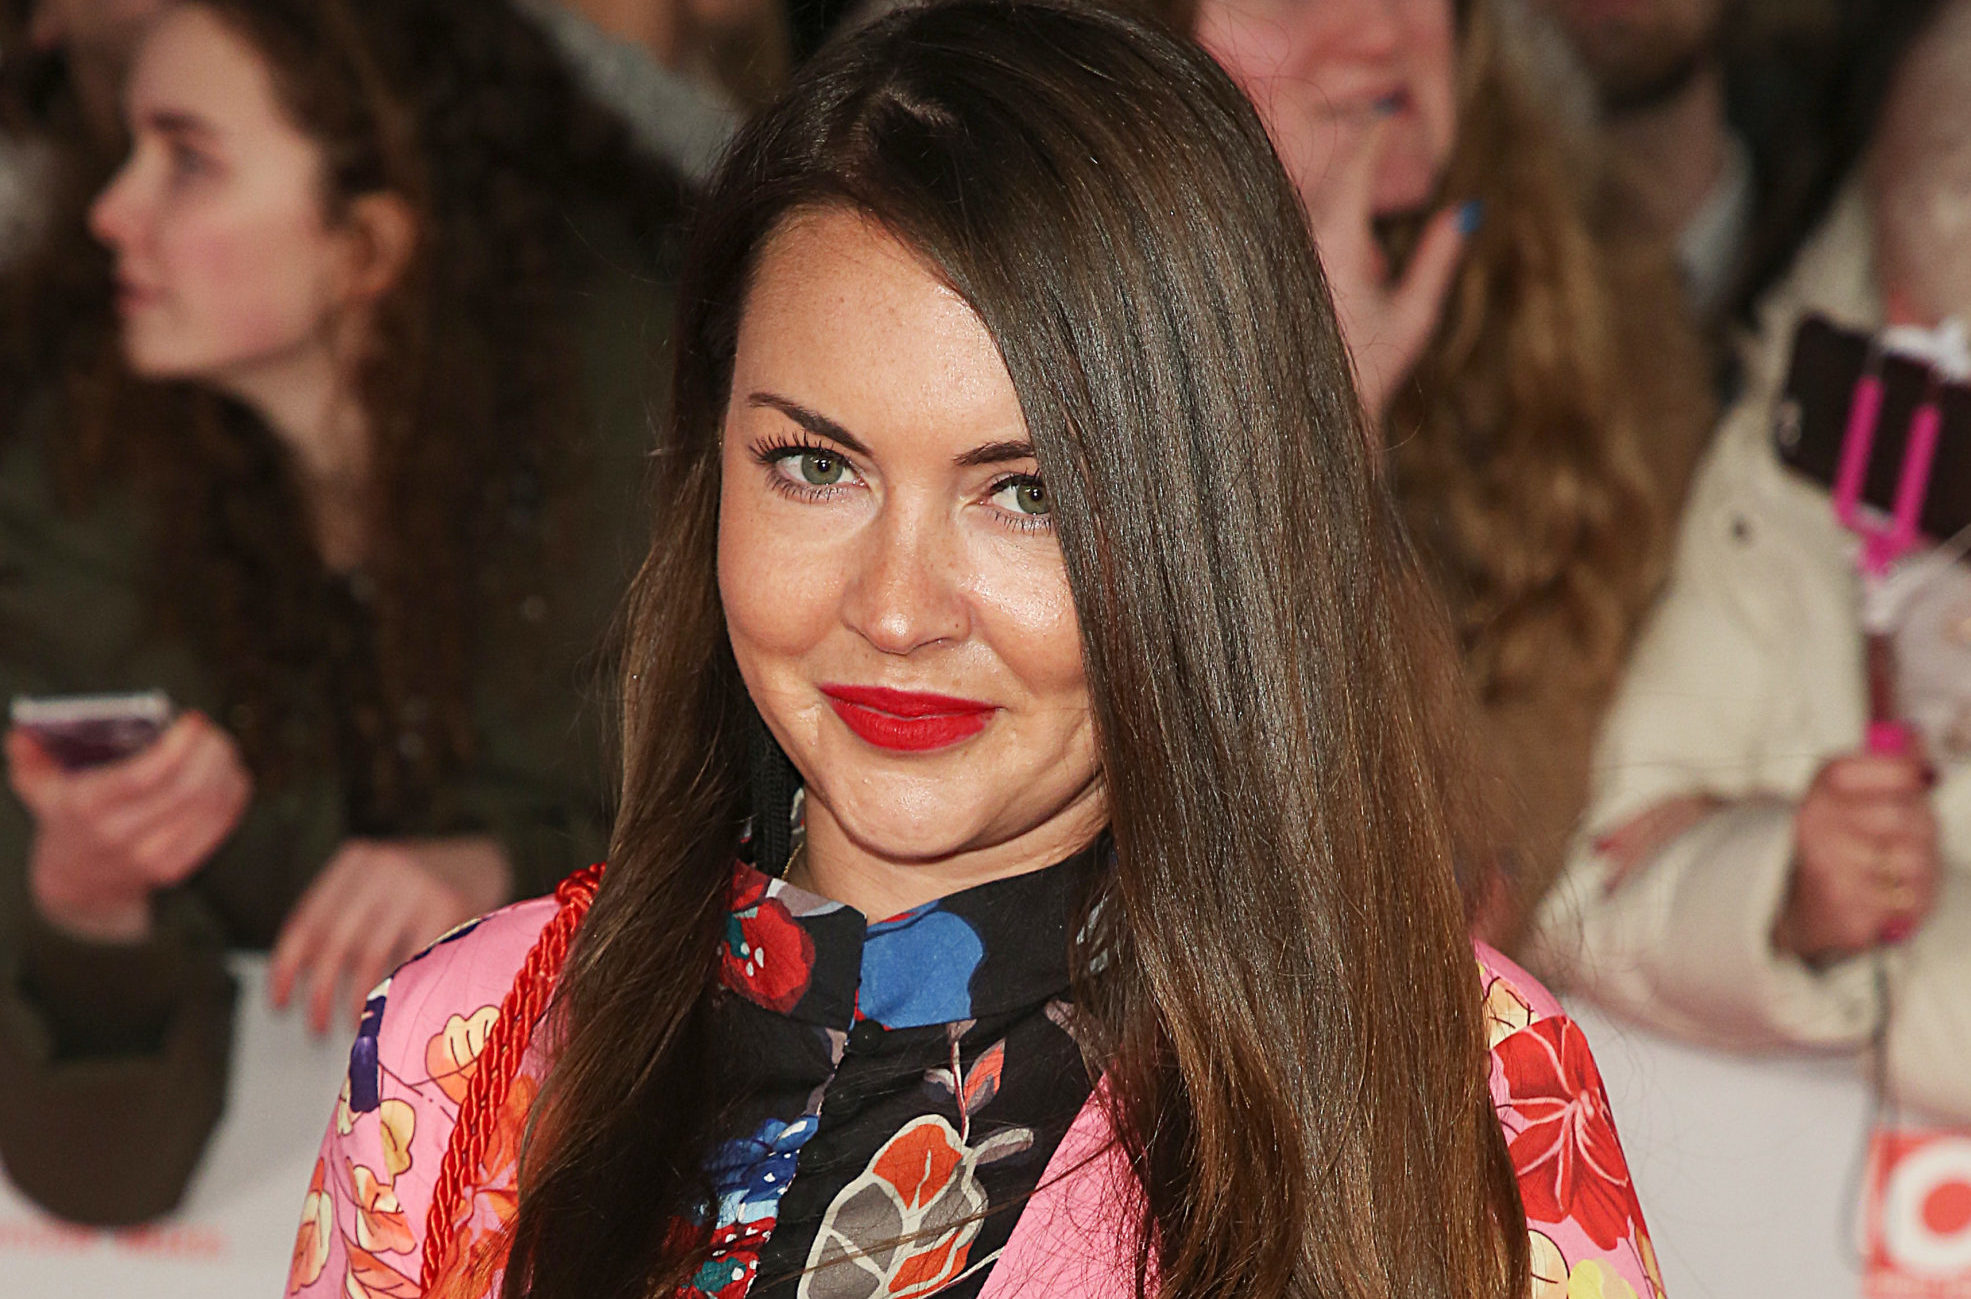 EastEnders star Lacey Turner shares adorable new photo of daughter Dusty